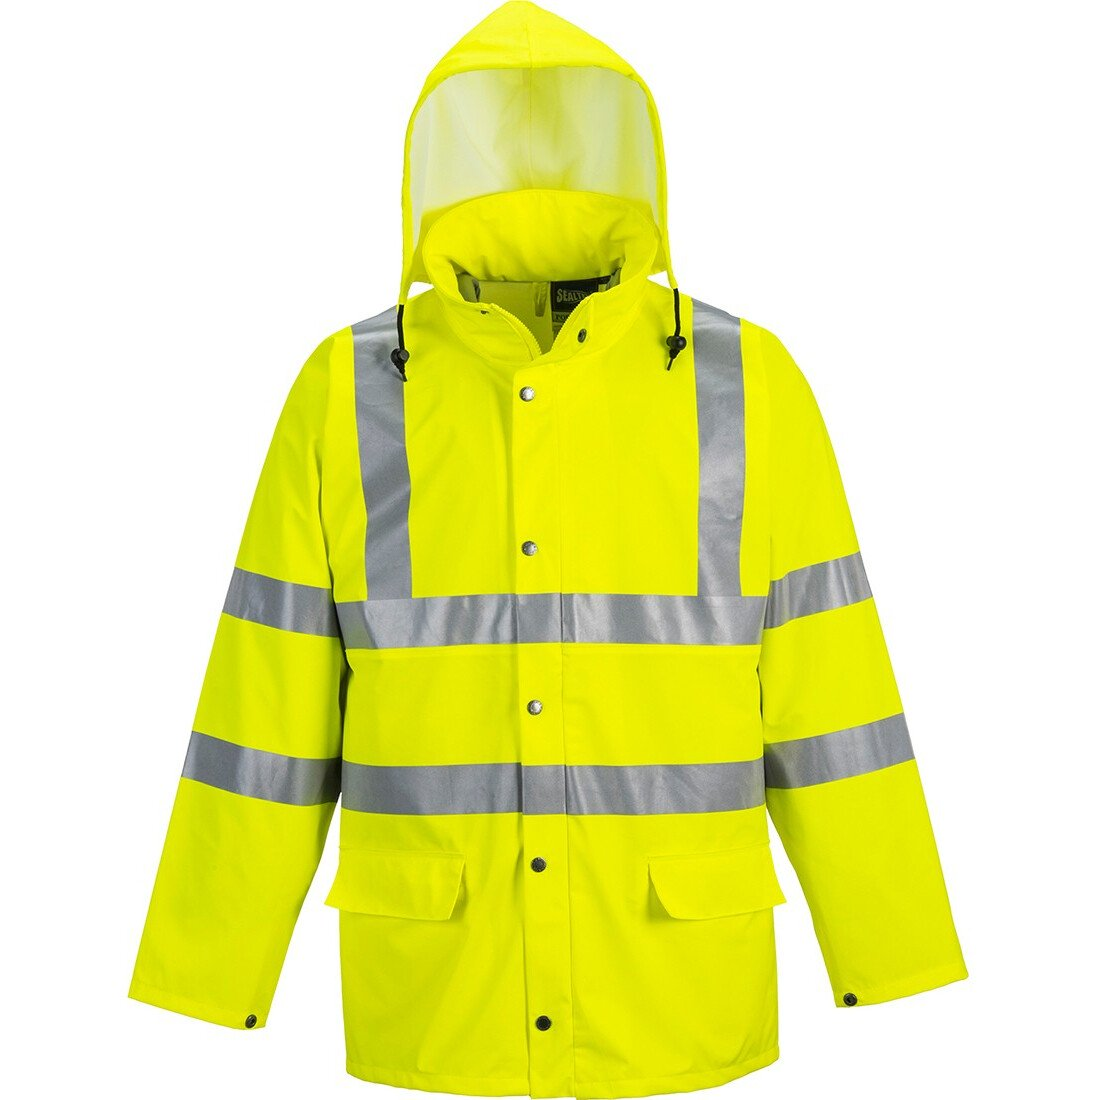 Portwest S491 Sealtex Ultra Unlined Jacket Waterproof and Windproof - Yellow